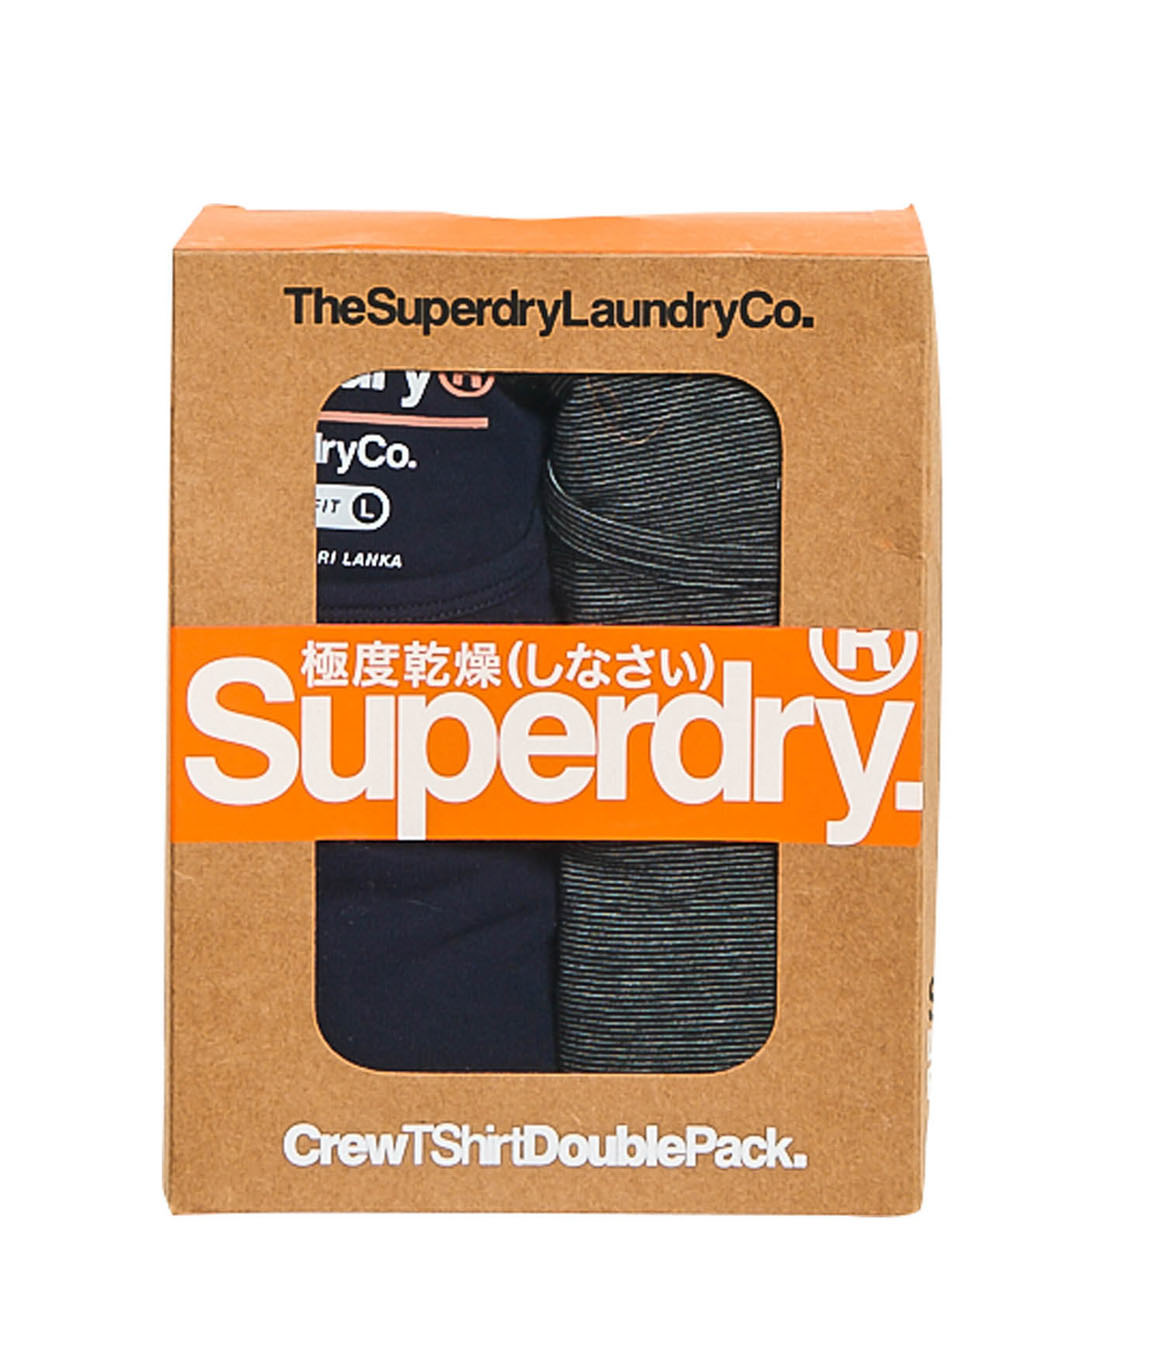 Superdry Laundry Slim Tee Crew Neck T-Shirt Double Pack Navy/Black Feeder S - XL